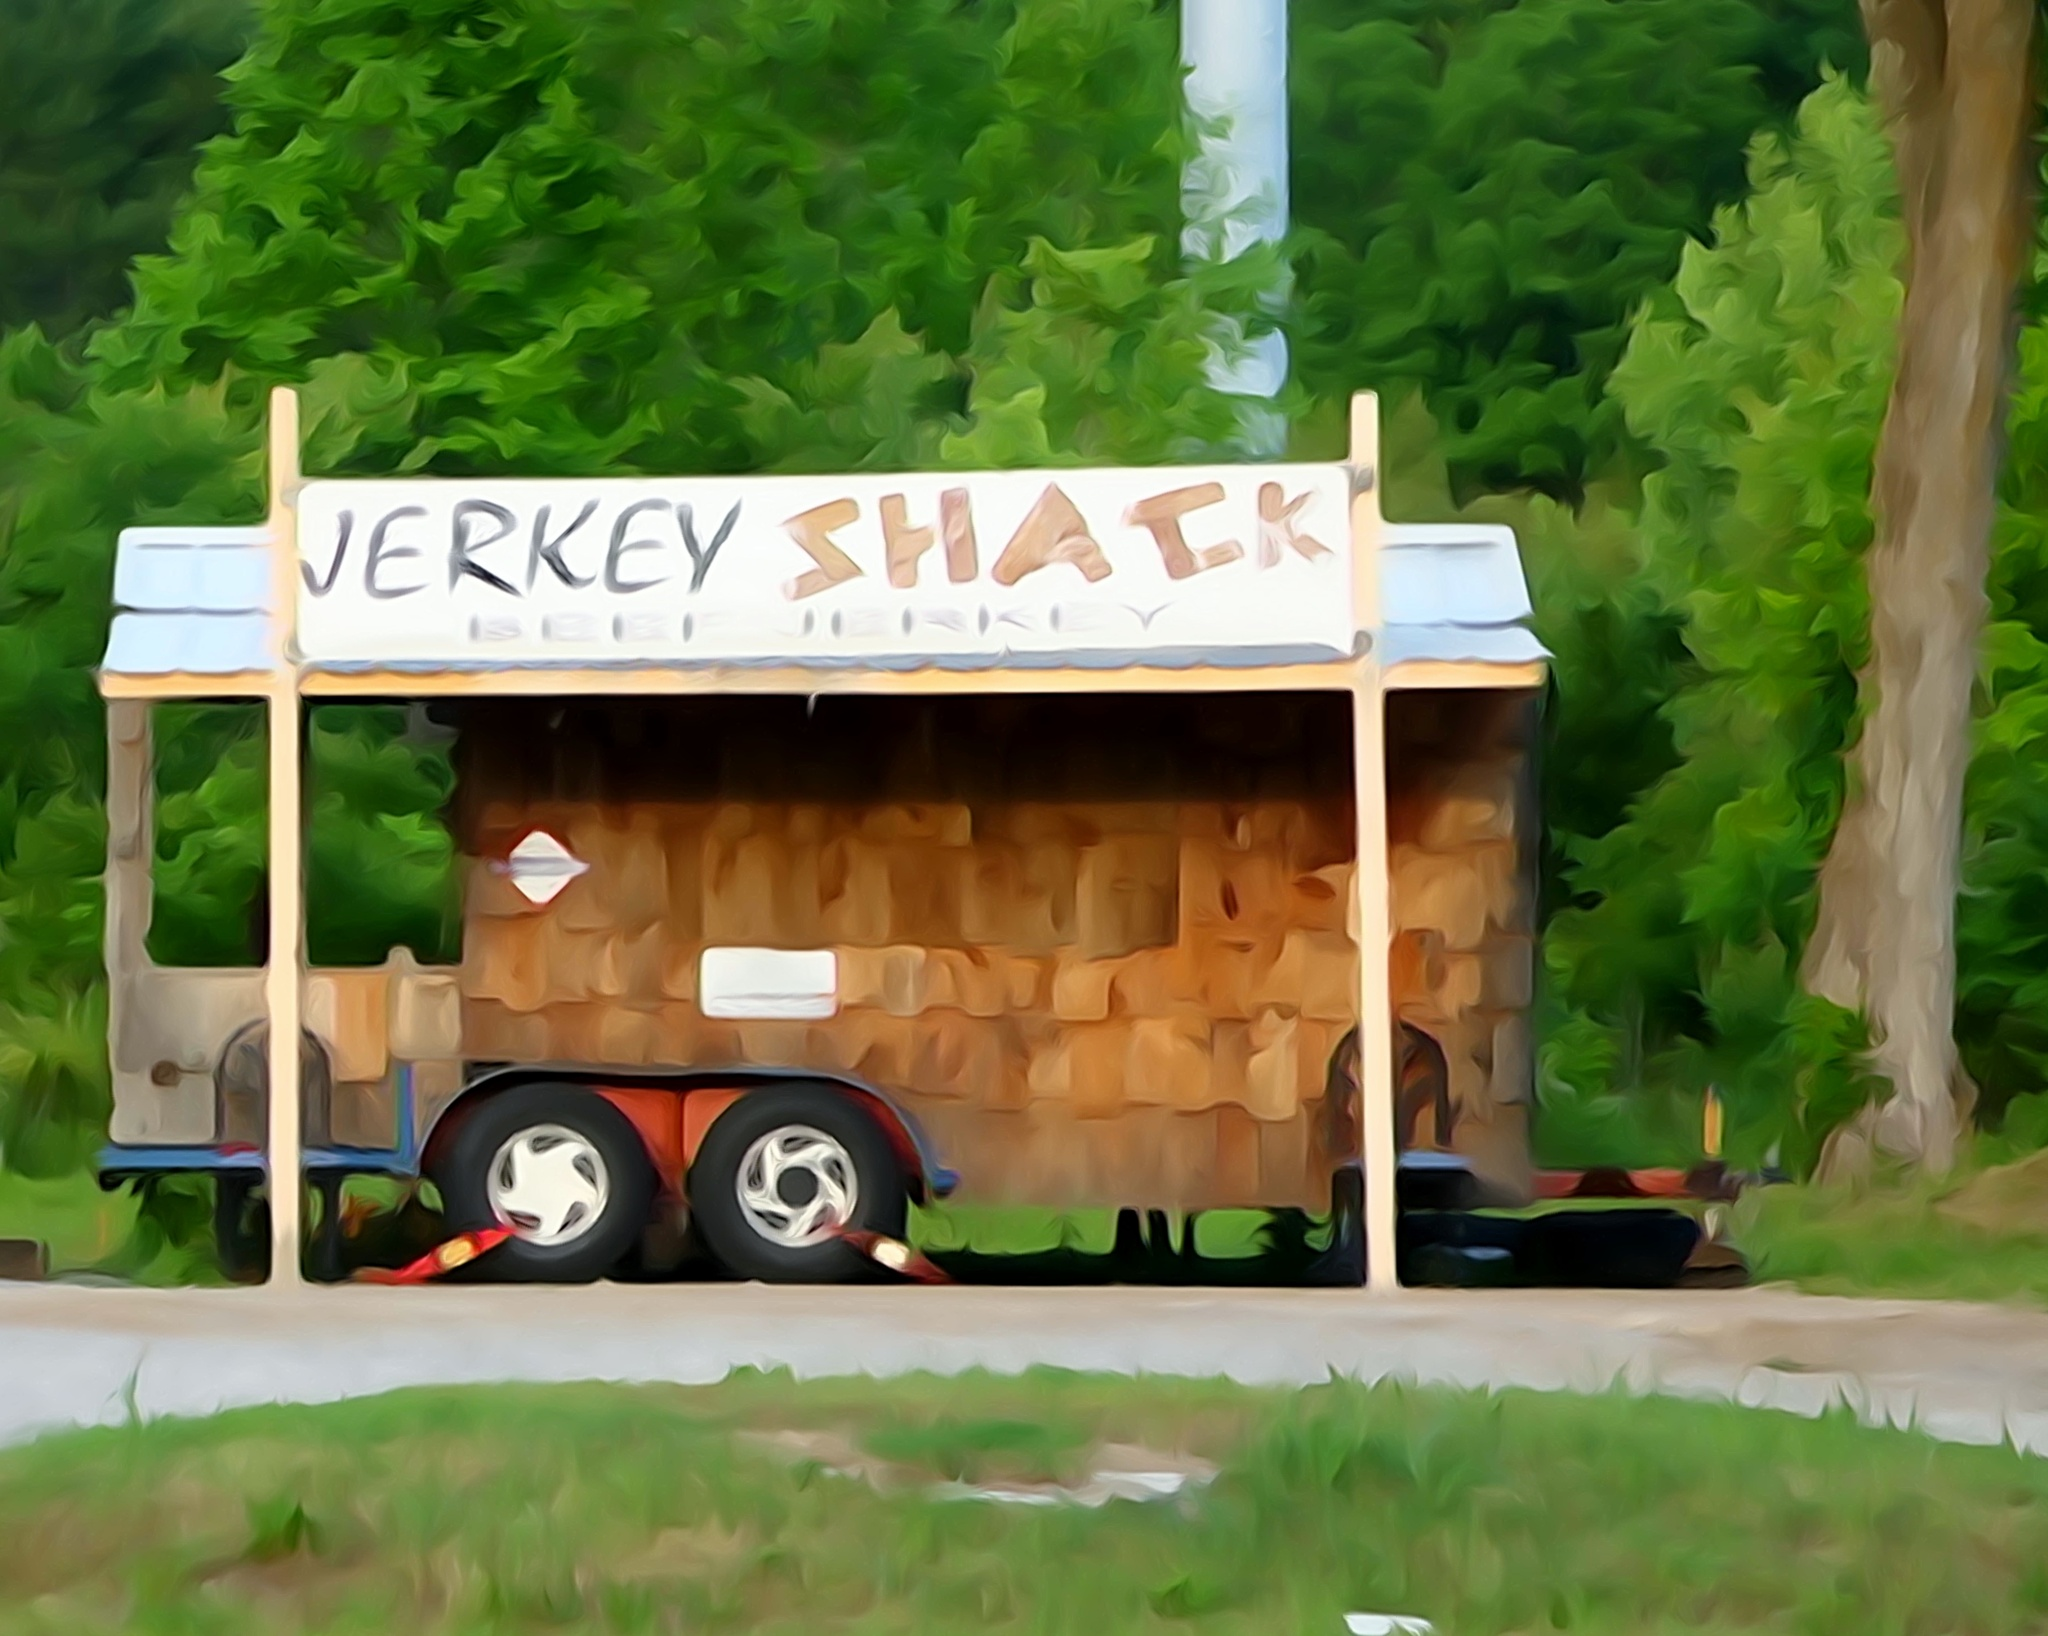 Only In Tennessee by Gary Cole